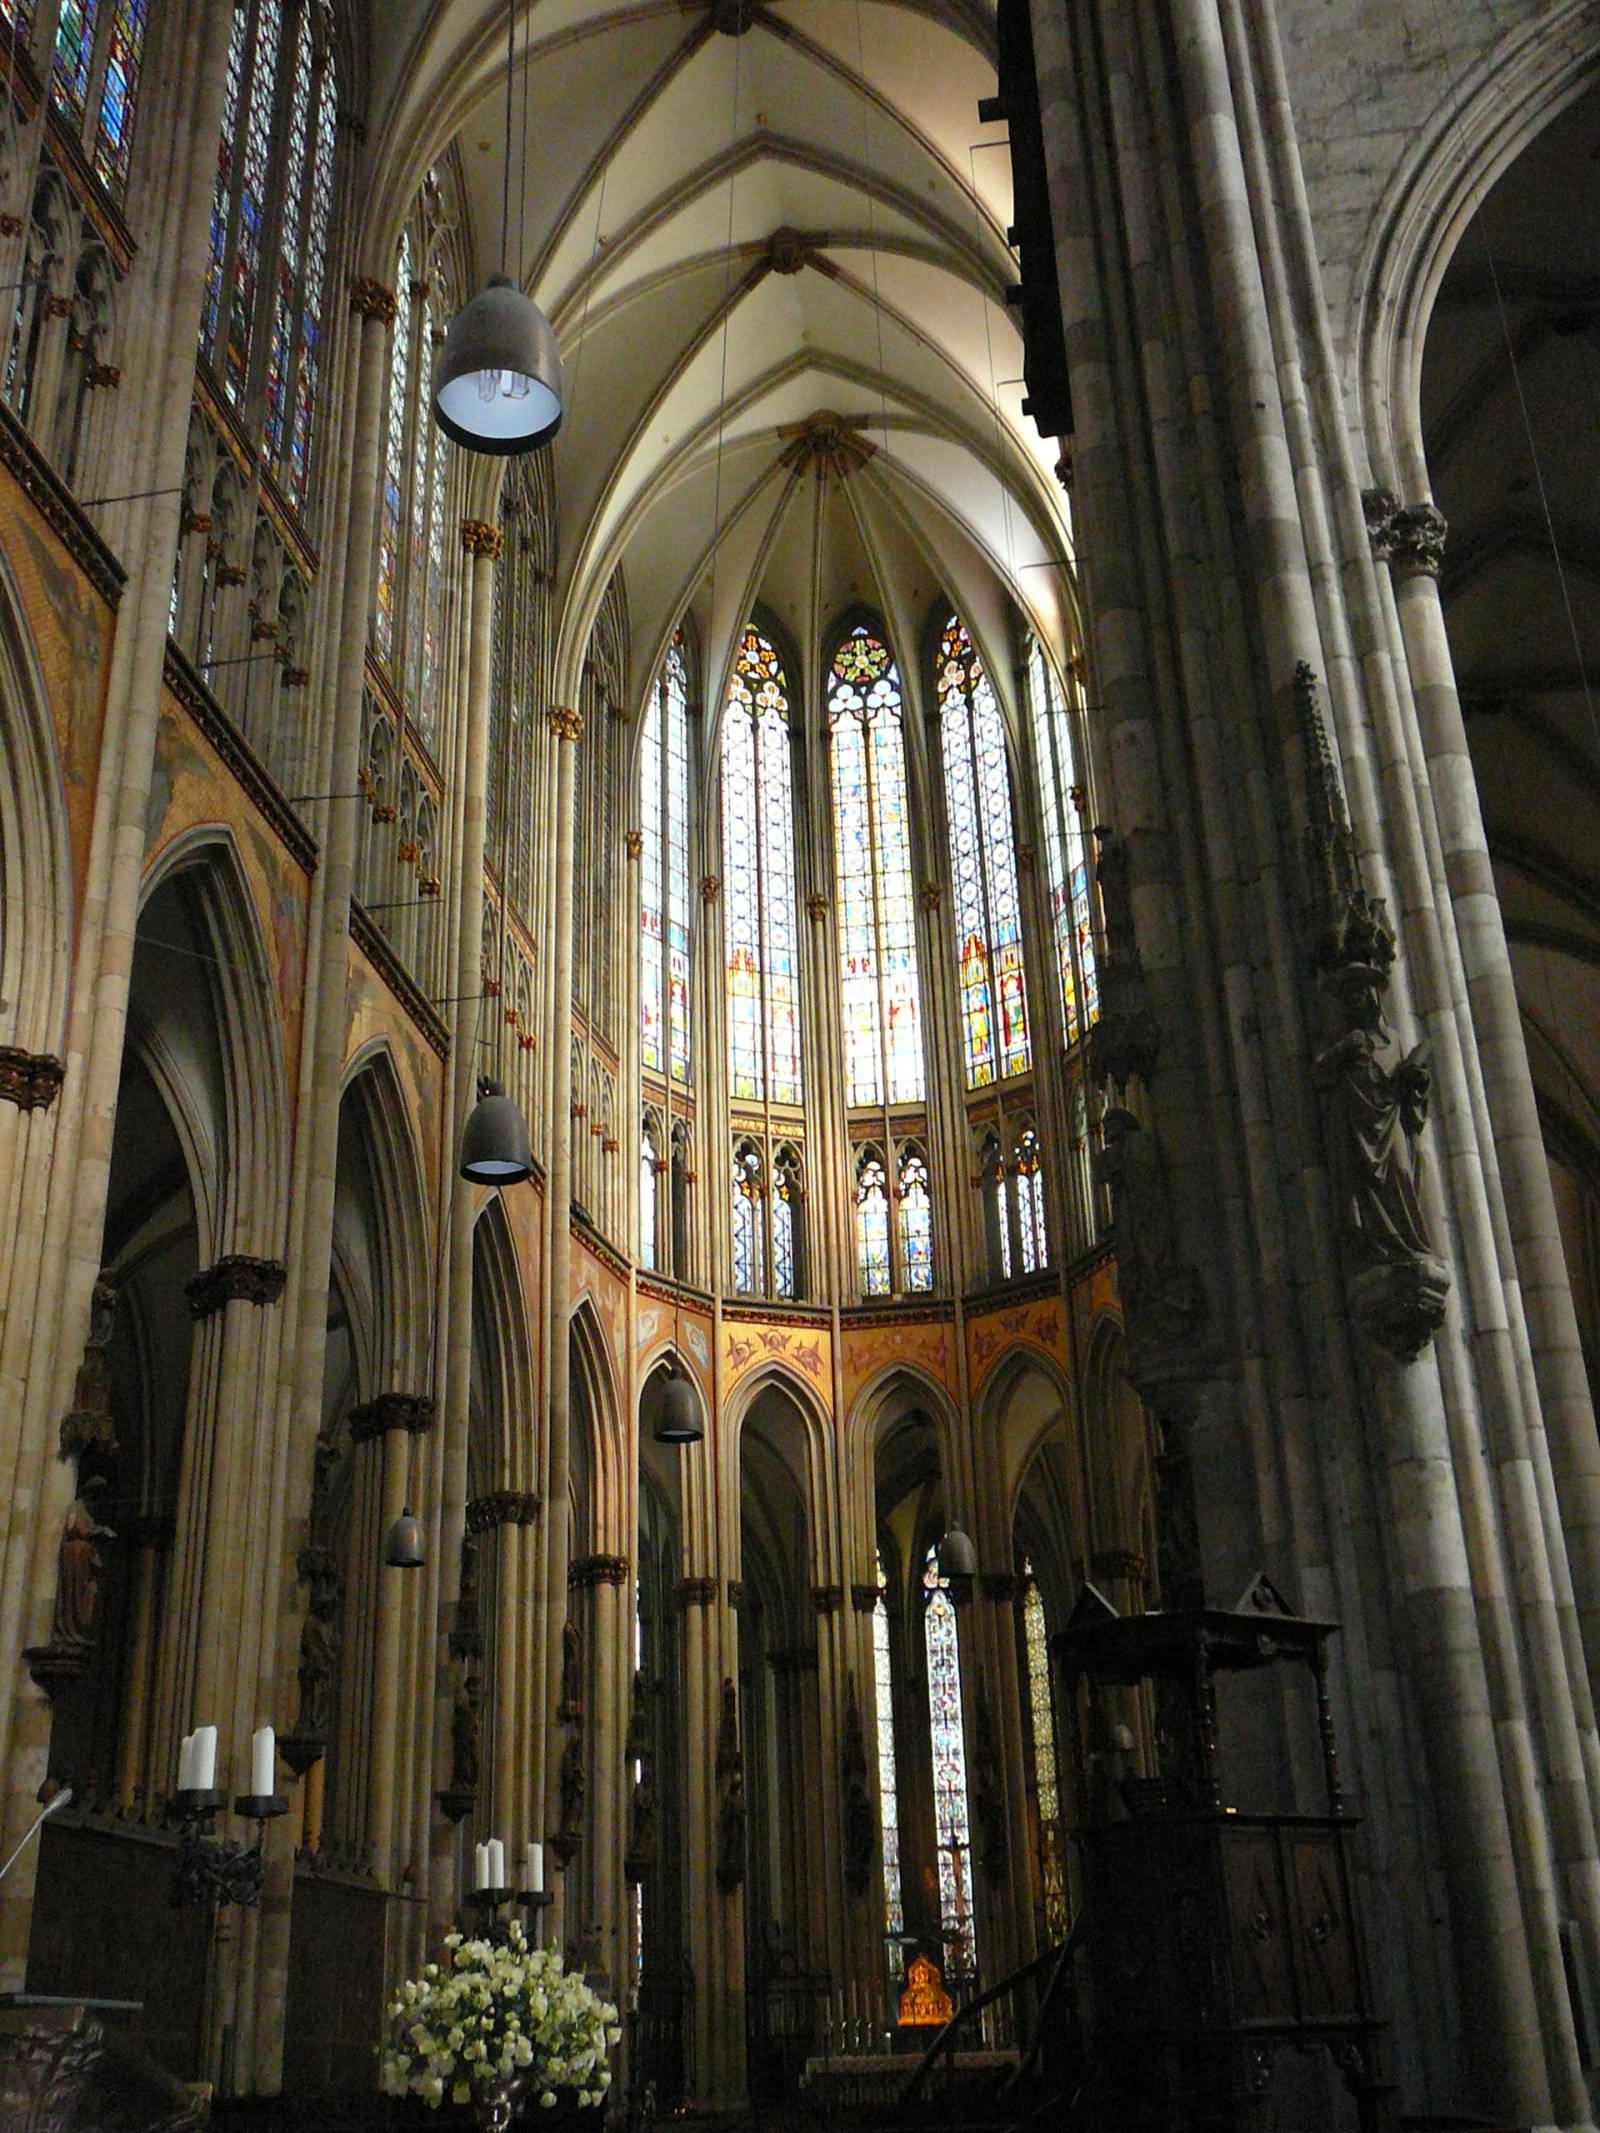 Cologne Cathedral, relics of the Three Wise Men